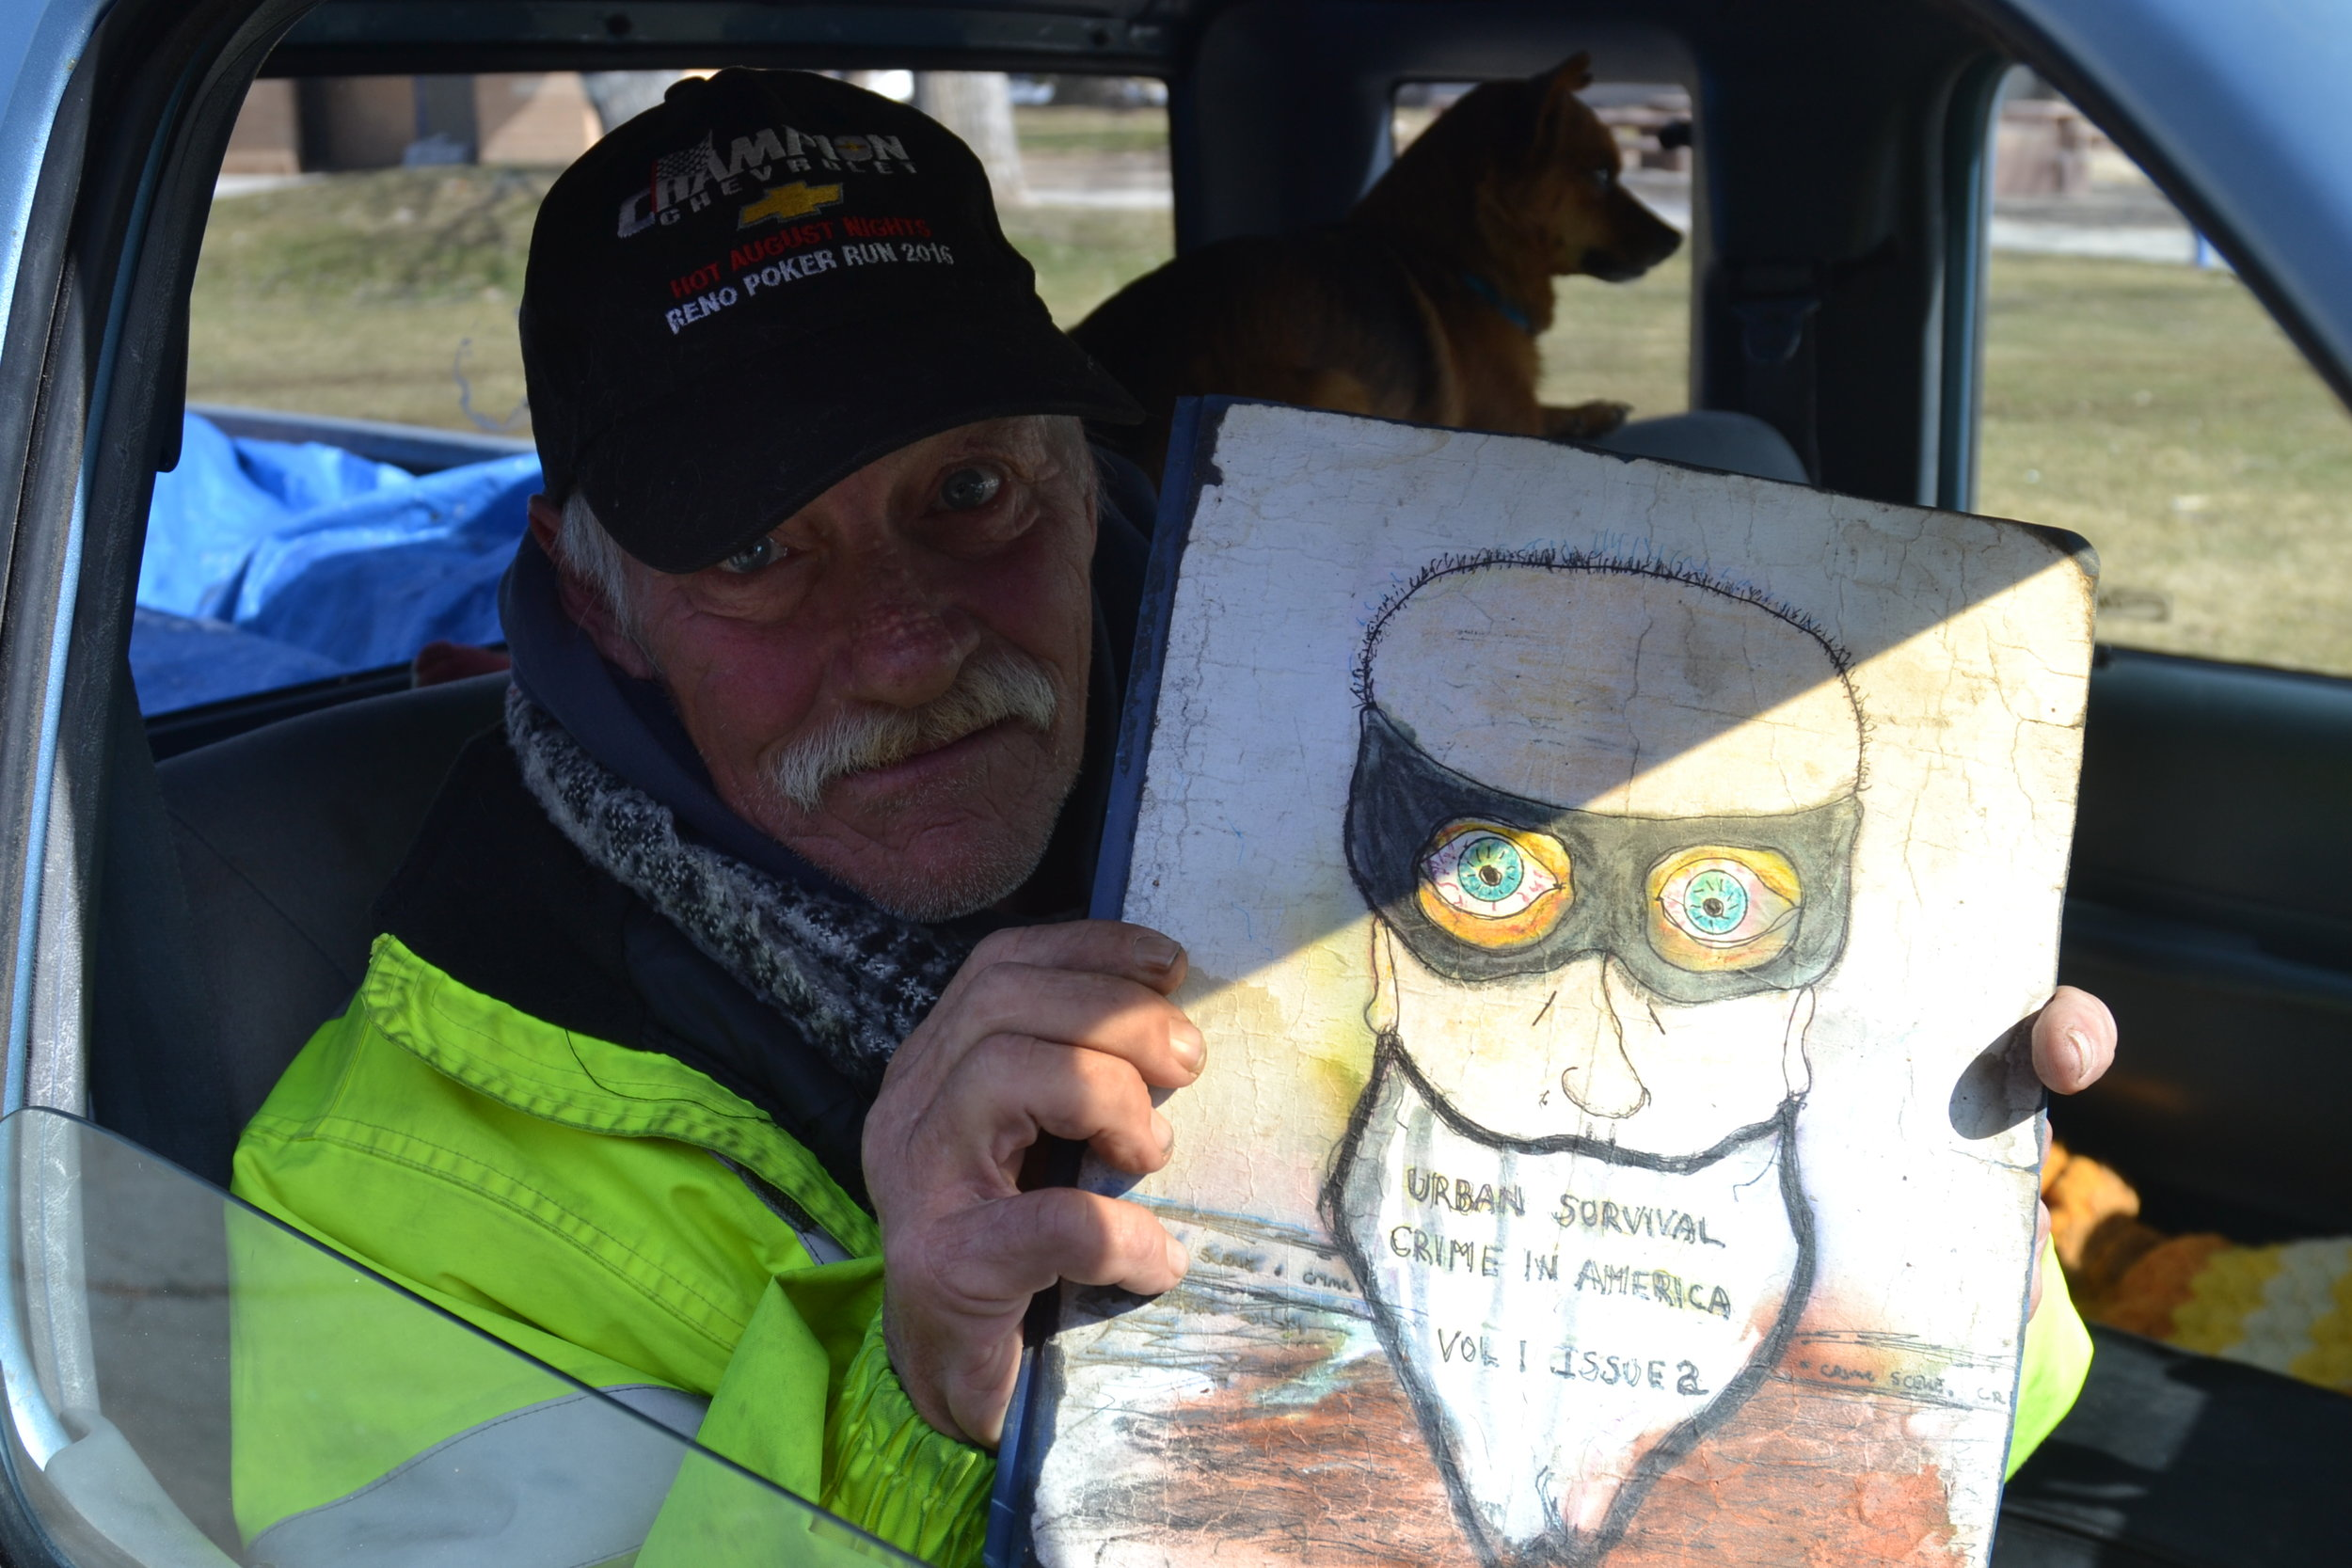 Jimbo sometimes stays in Deb's truck.  He shows one of the illustrated manifestos he's been working on. Photo by Jacob Jacoby for Our Town Reno